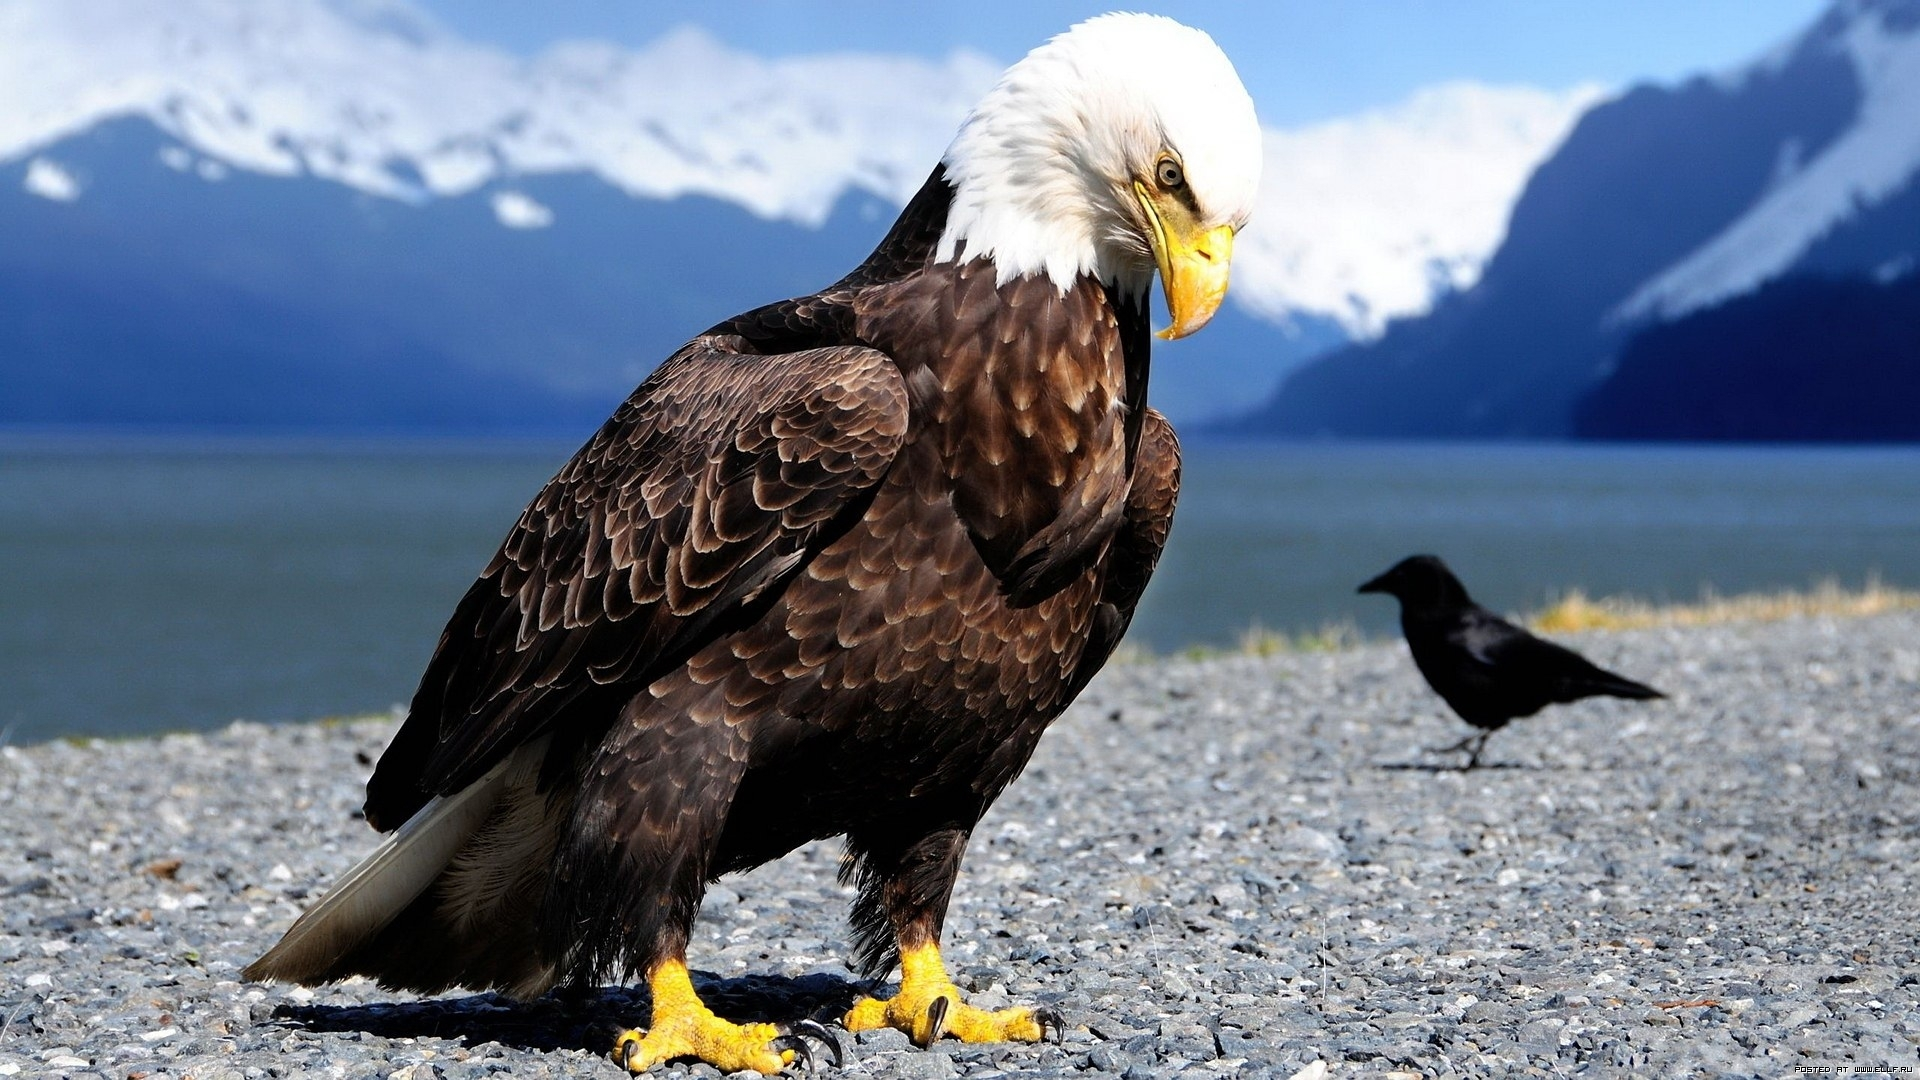 50269 download wallpaper Animals, Birds, Eagles screensavers and pictures for free